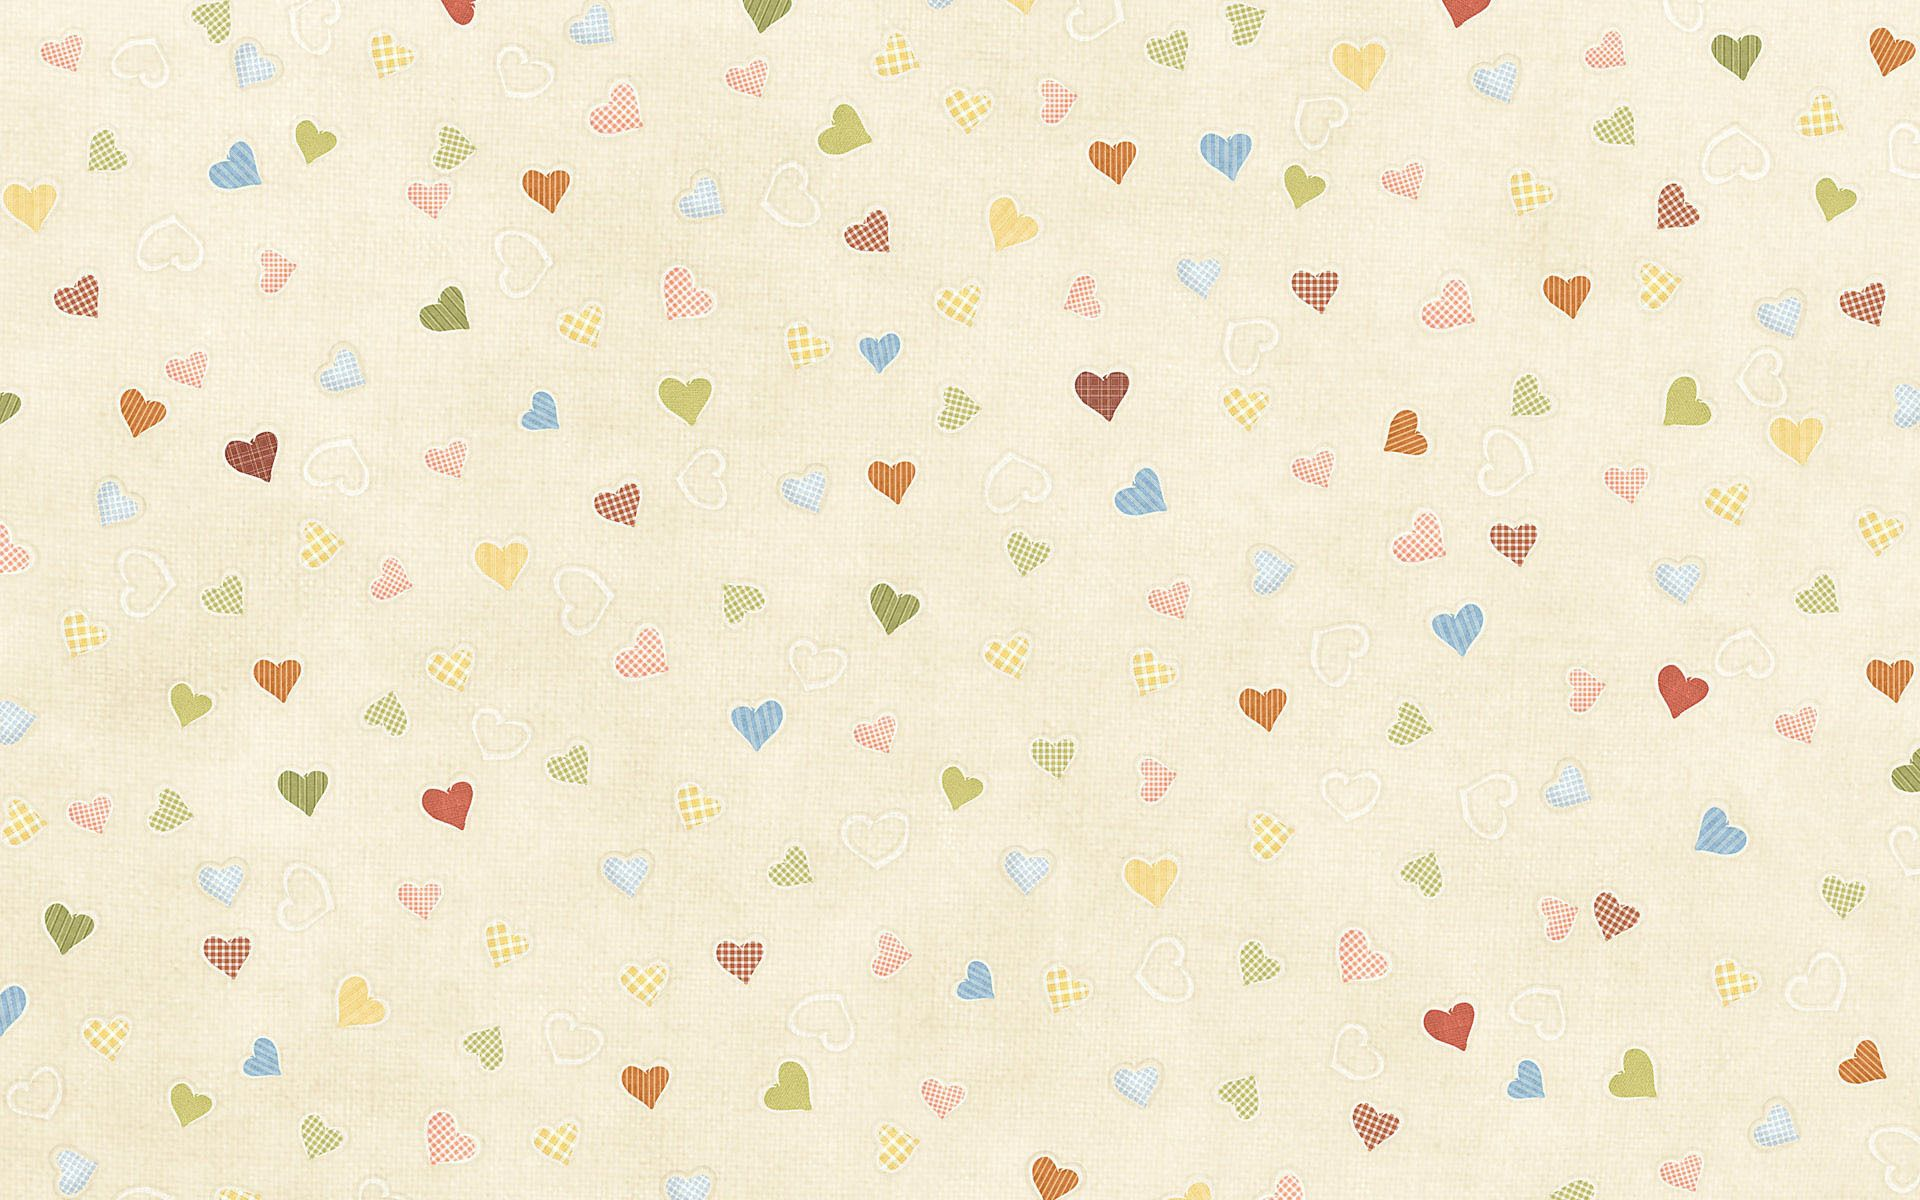 129027 download wallpaper Textures, Texture, Pictures, Baby, Surface, Light Coloured, Light screensavers and pictures for free